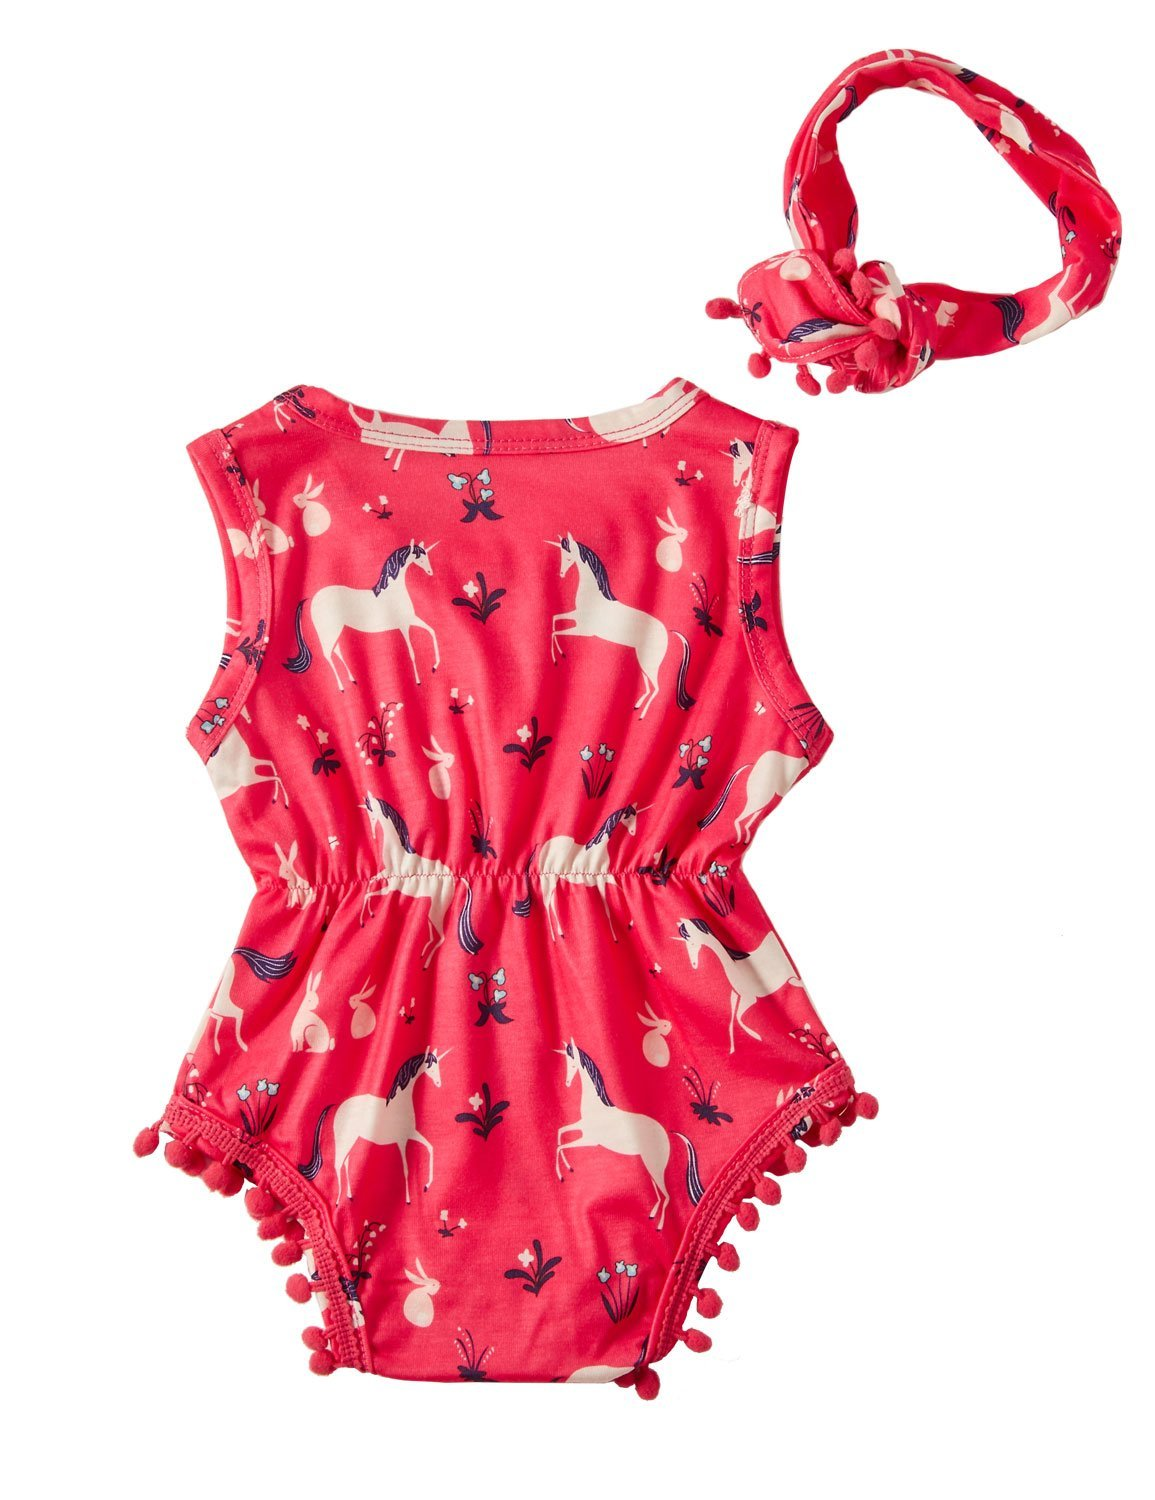 RAISEVERN Baby Girl Clothes Unicorn Horse Bodysuit Romper Sleeveless Bodysuits Outfits with Bowknot Headband Red